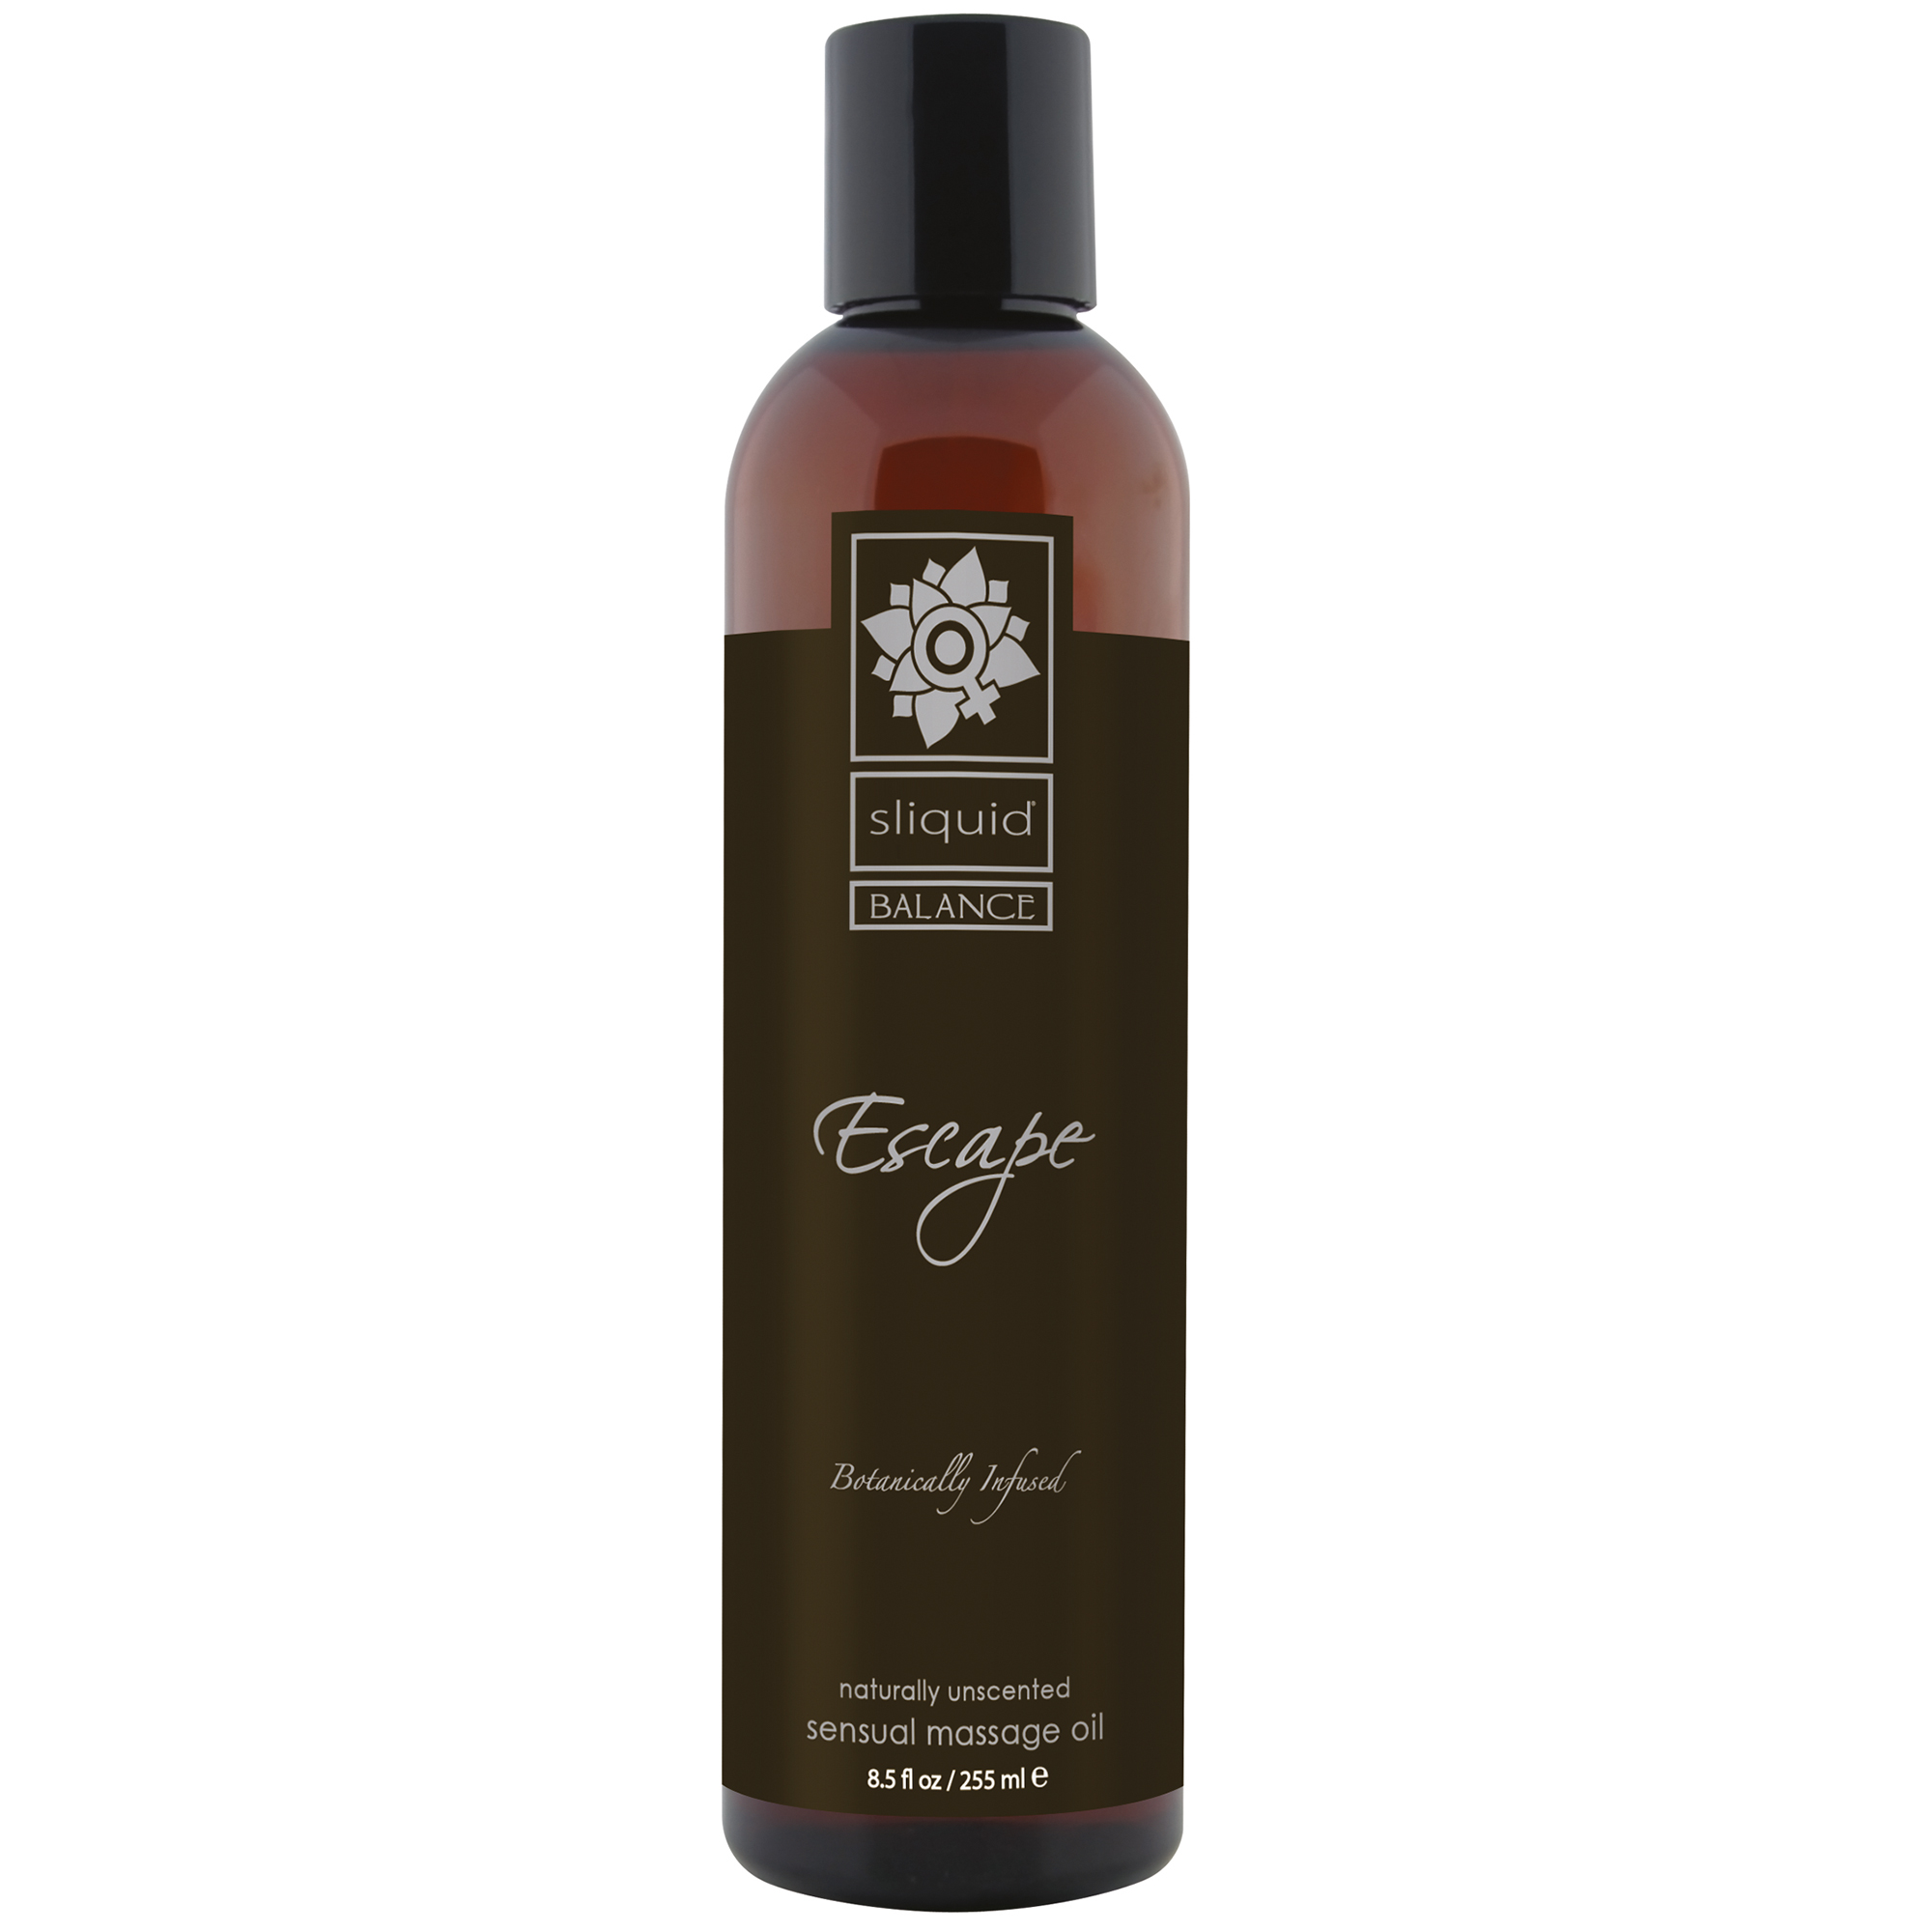 Balance Escape - 255 ml | Apotek, Massage, Massageolja | Intimast.se - Sexleksaker